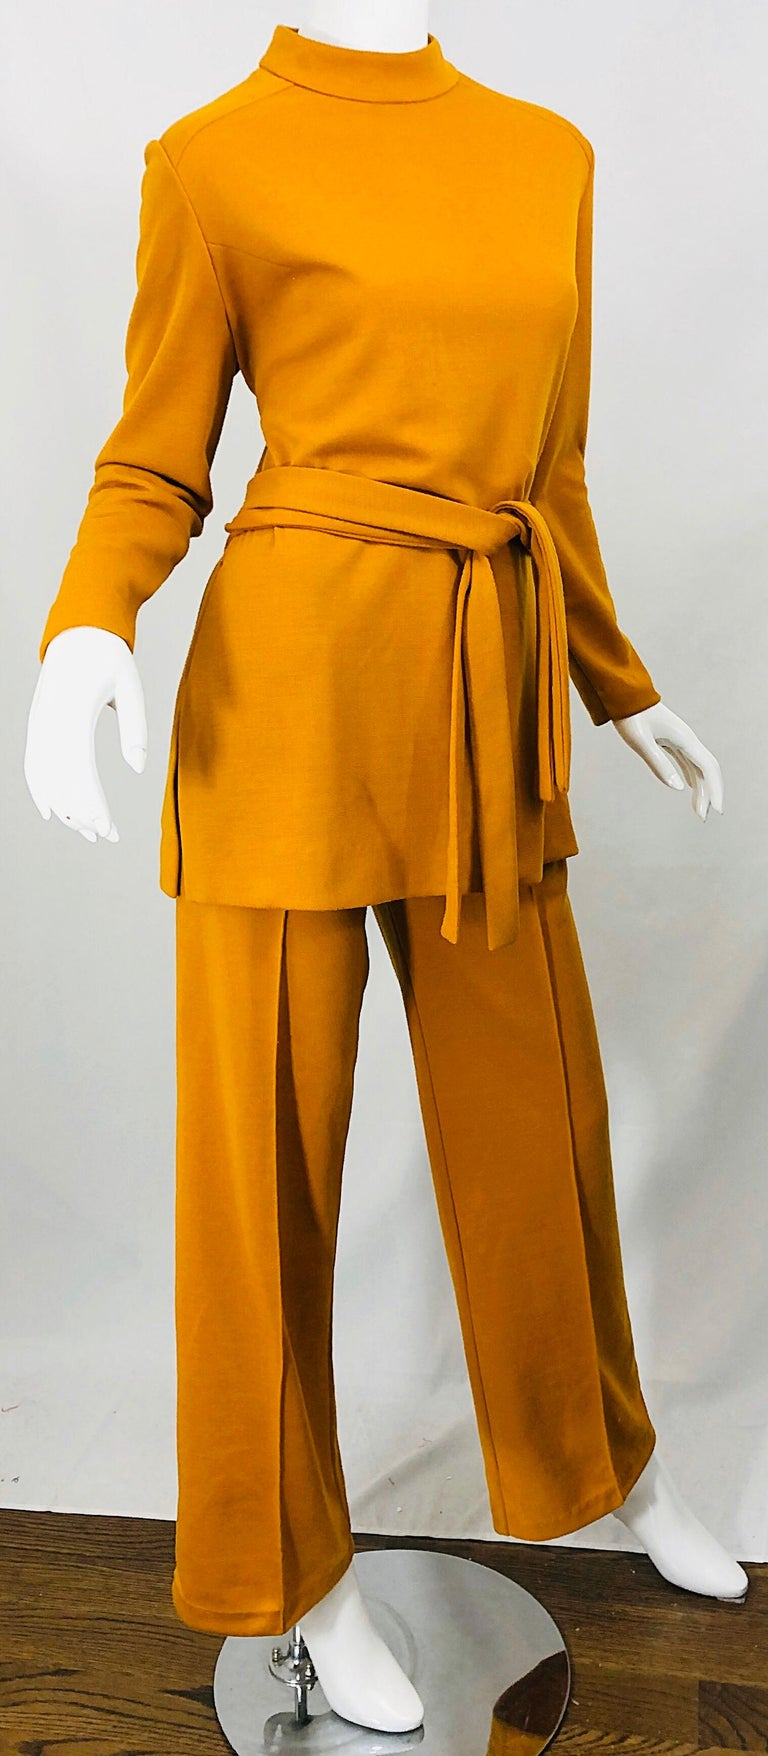 1970s Marigold Mustard Yellow Four Piece Vintage 70s Knit Shirt + Pants + Belt For Sale 1